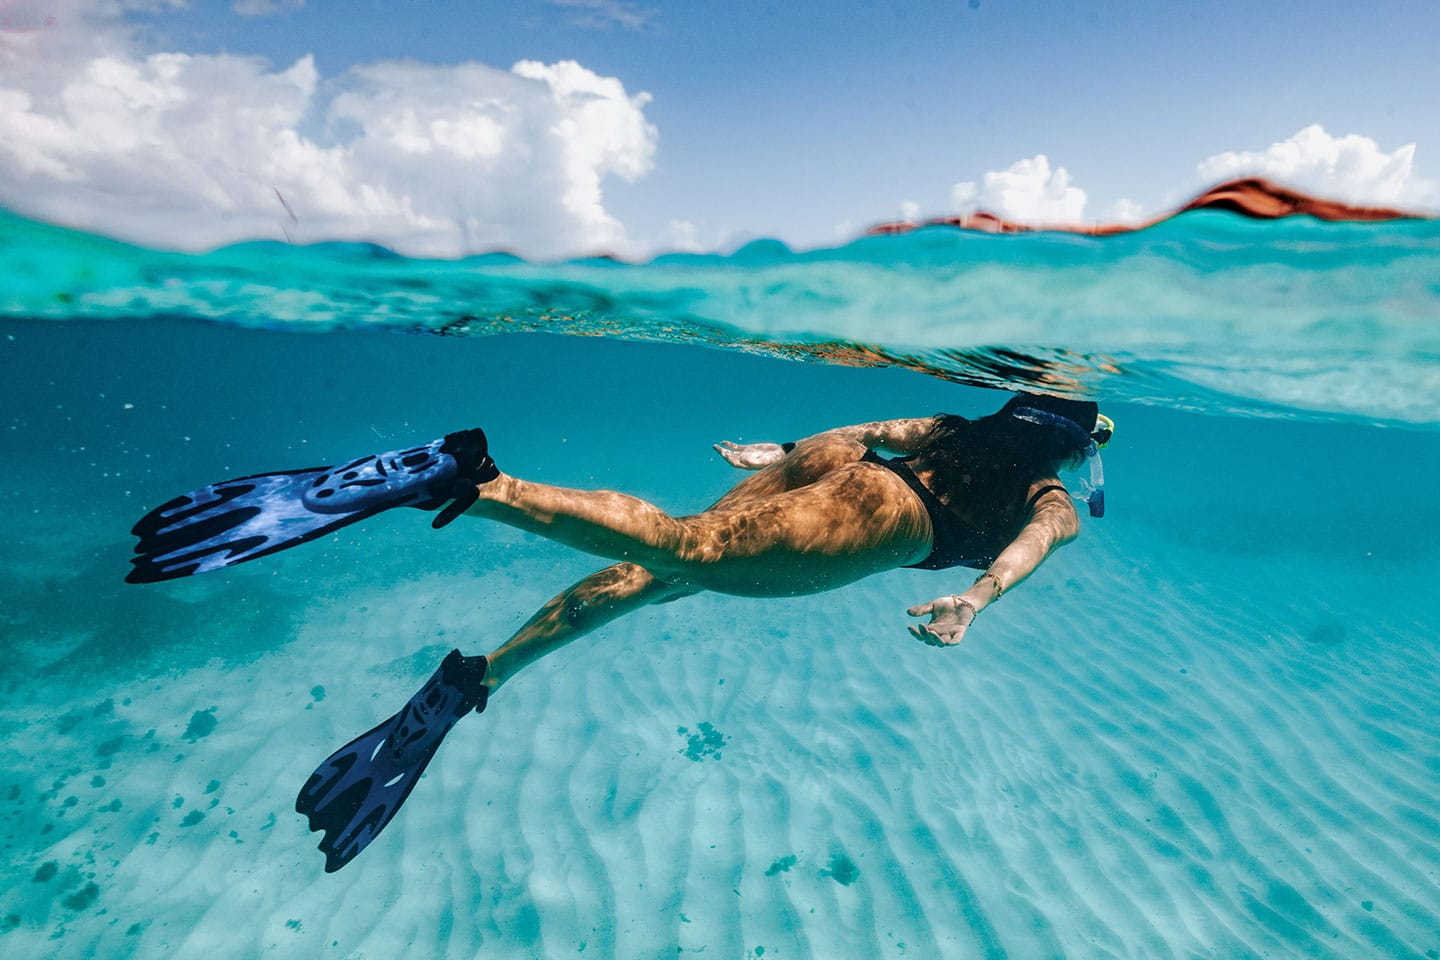 Girl snorkeling in shallow water